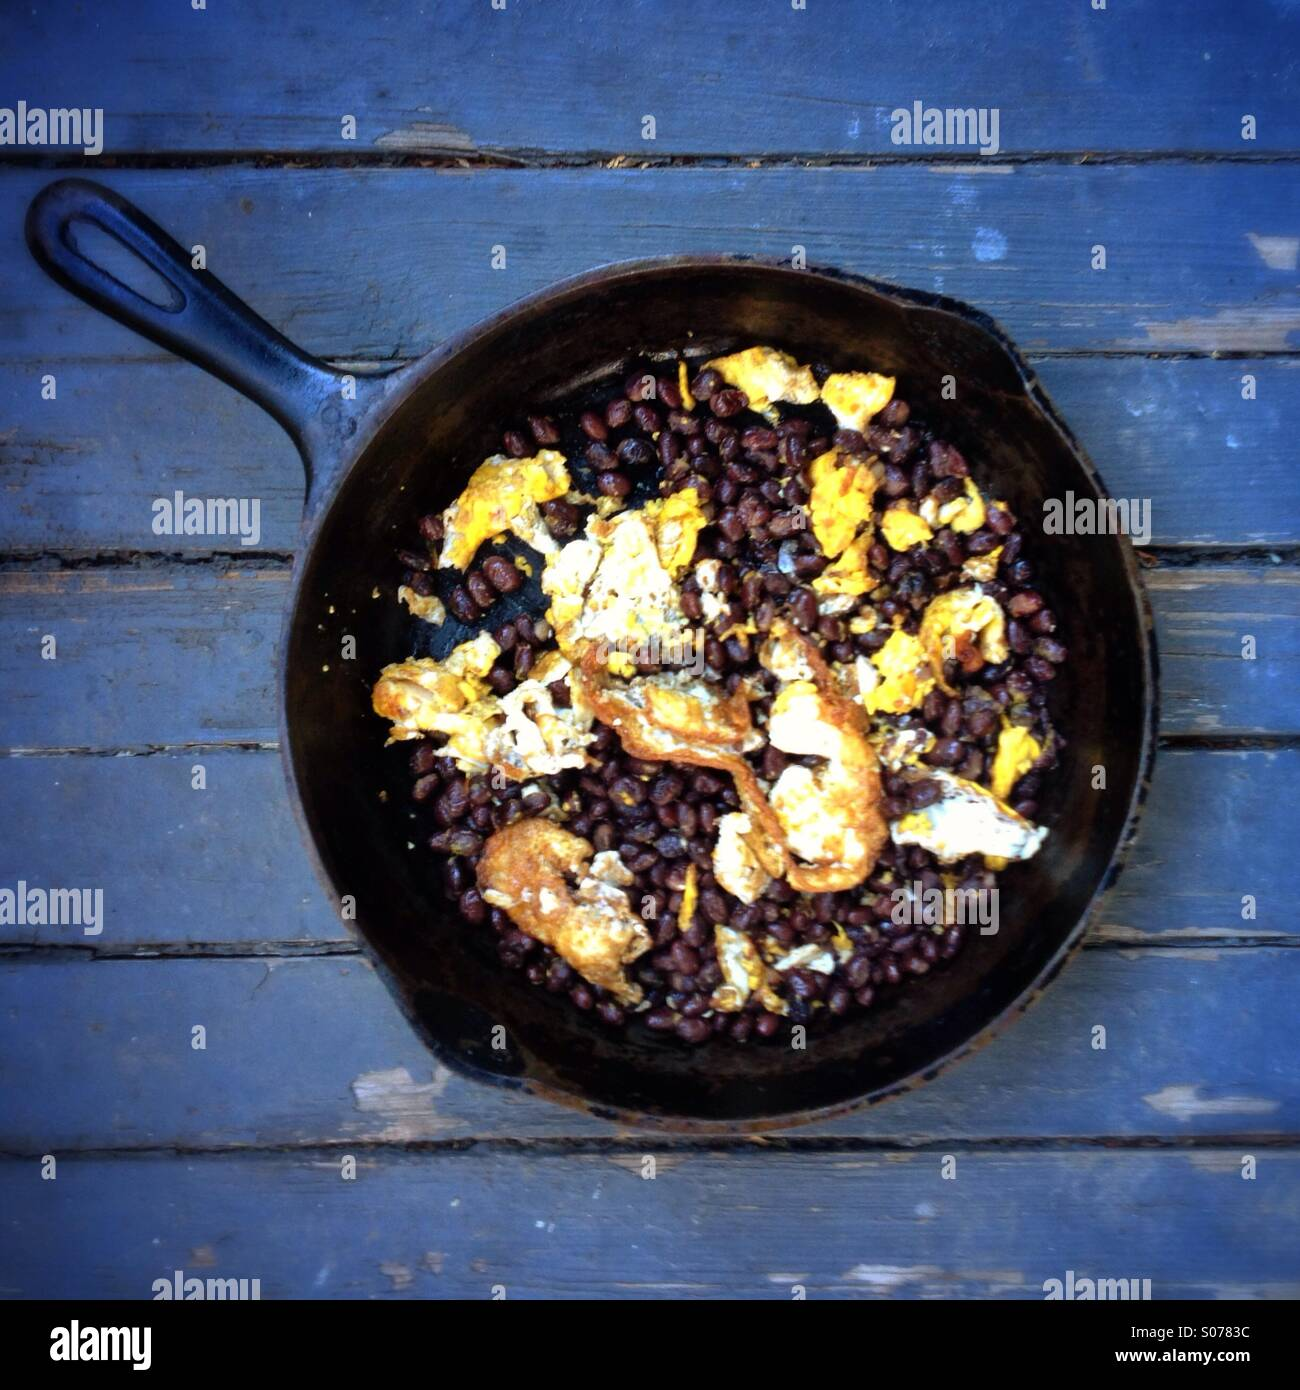 Black beans and eggs in an iron skillet - Stock Image